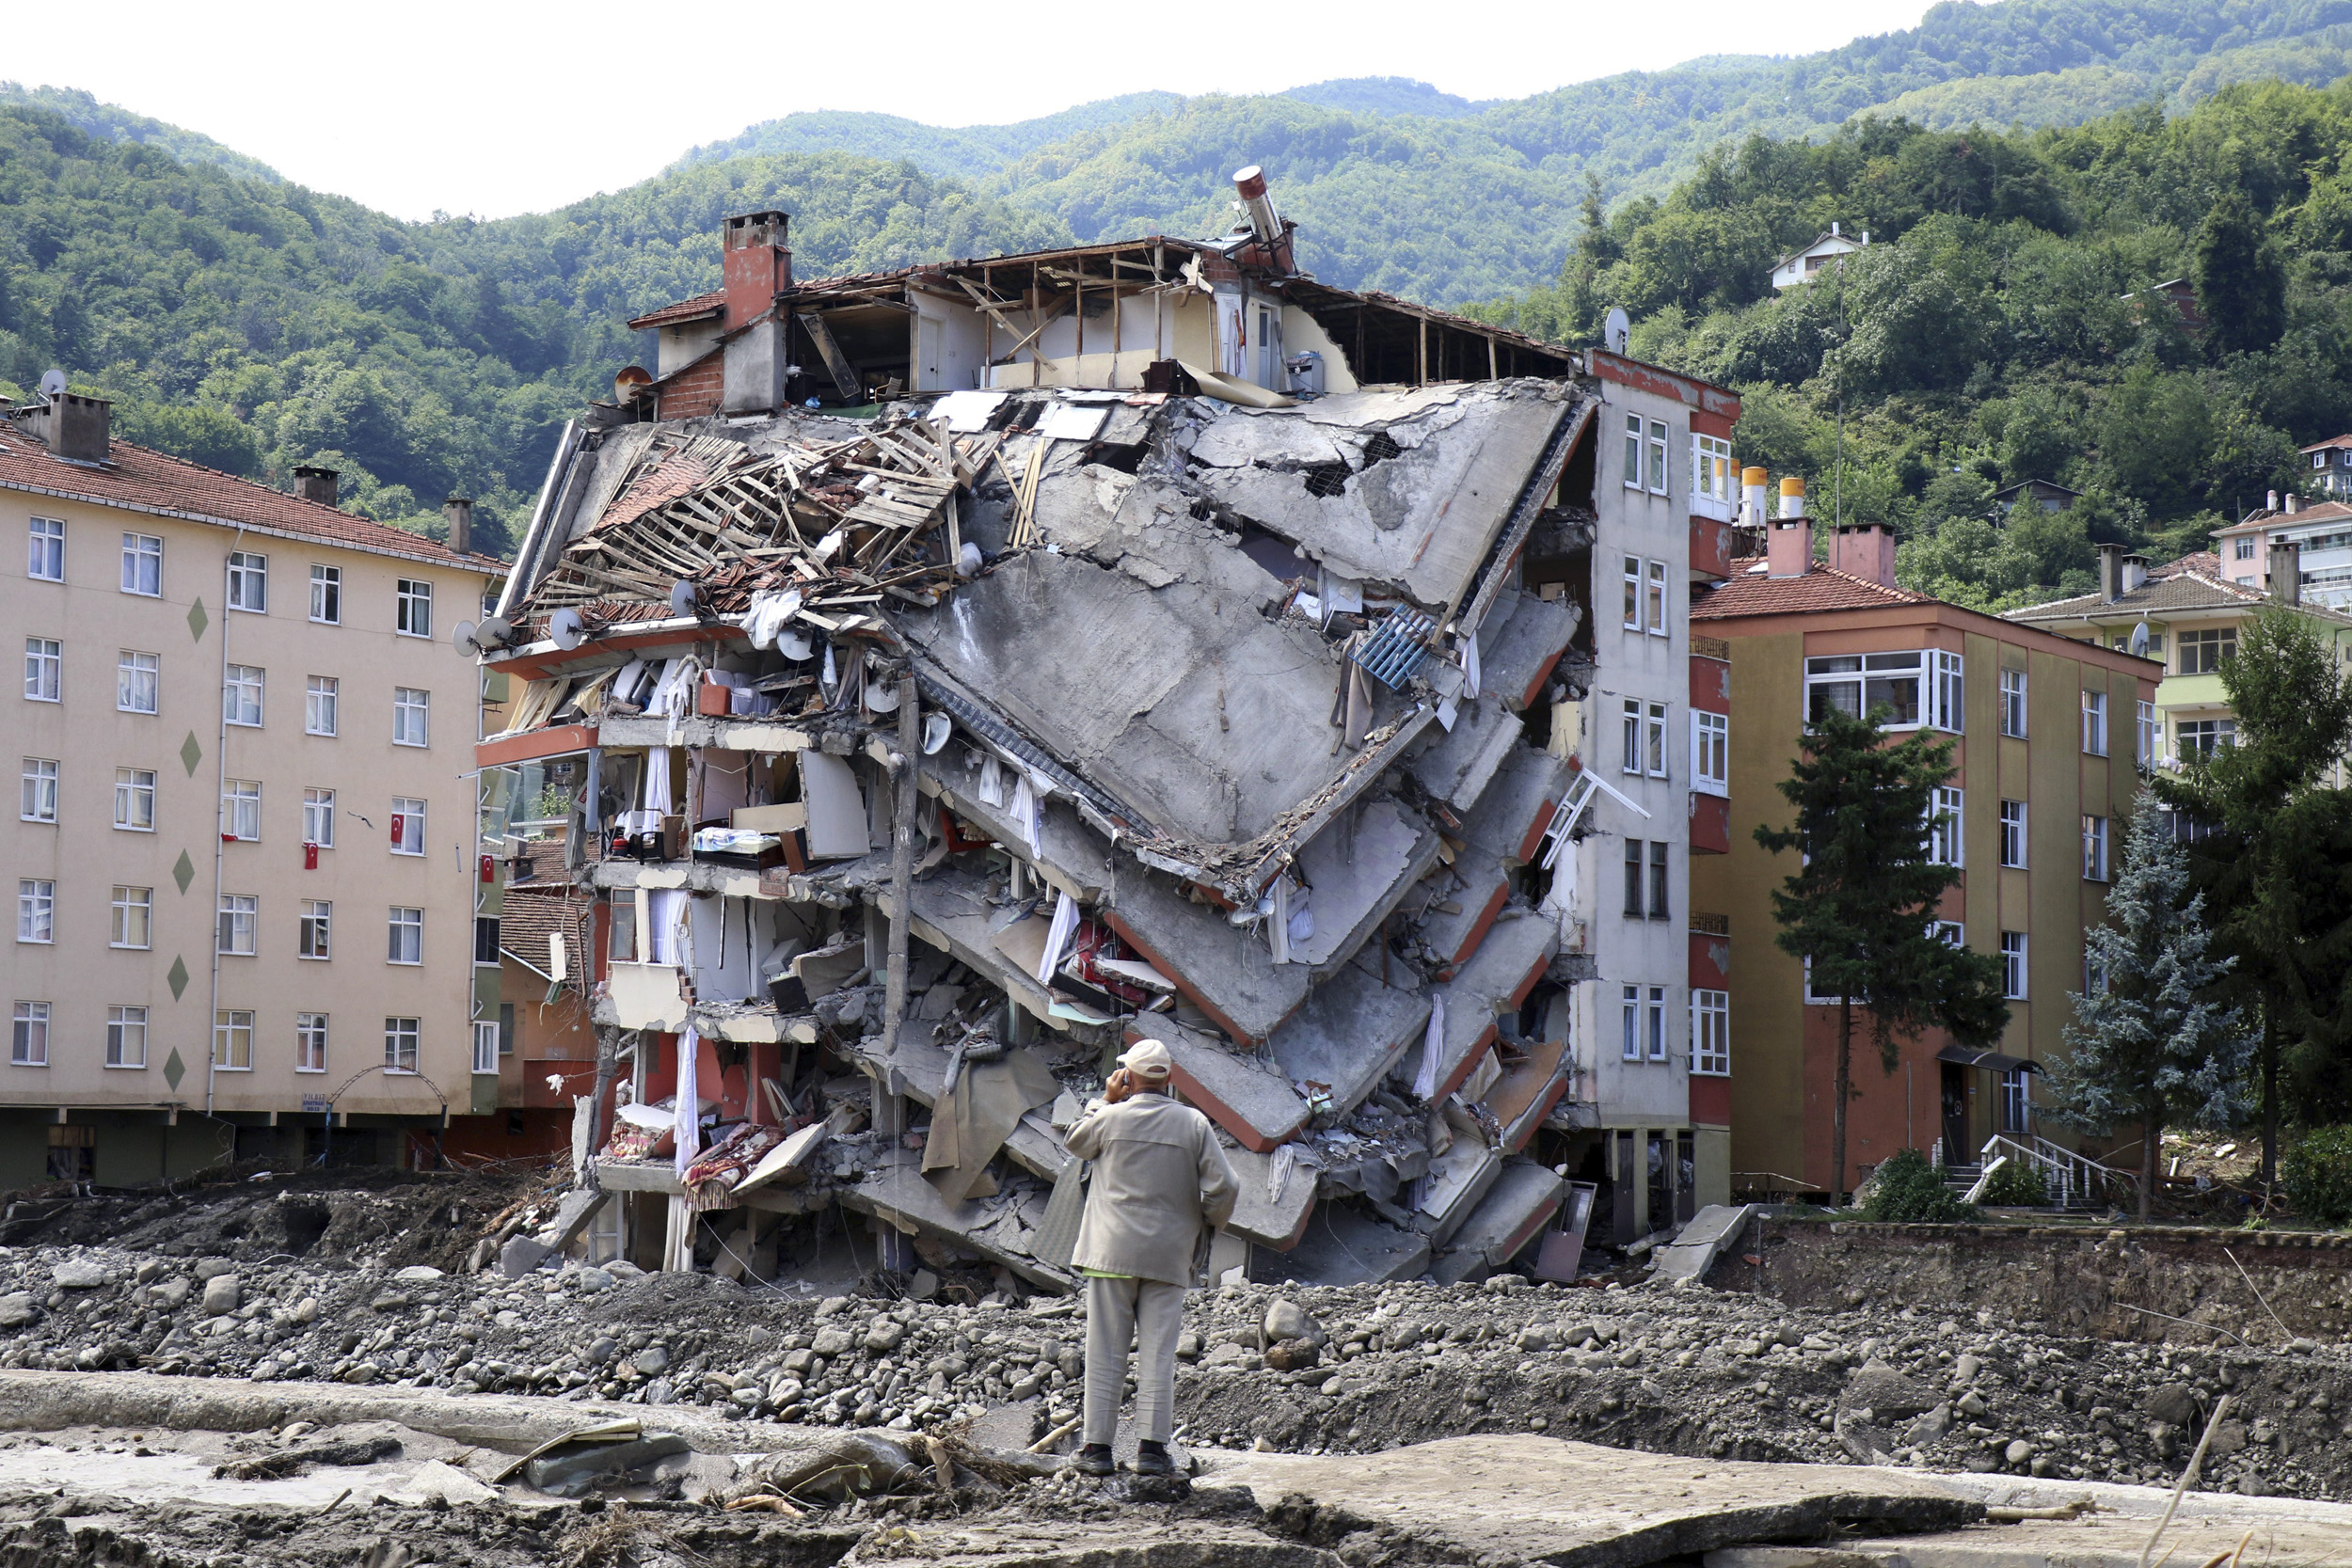 At least 44 killed by severe flooding and mudslides in Turkey